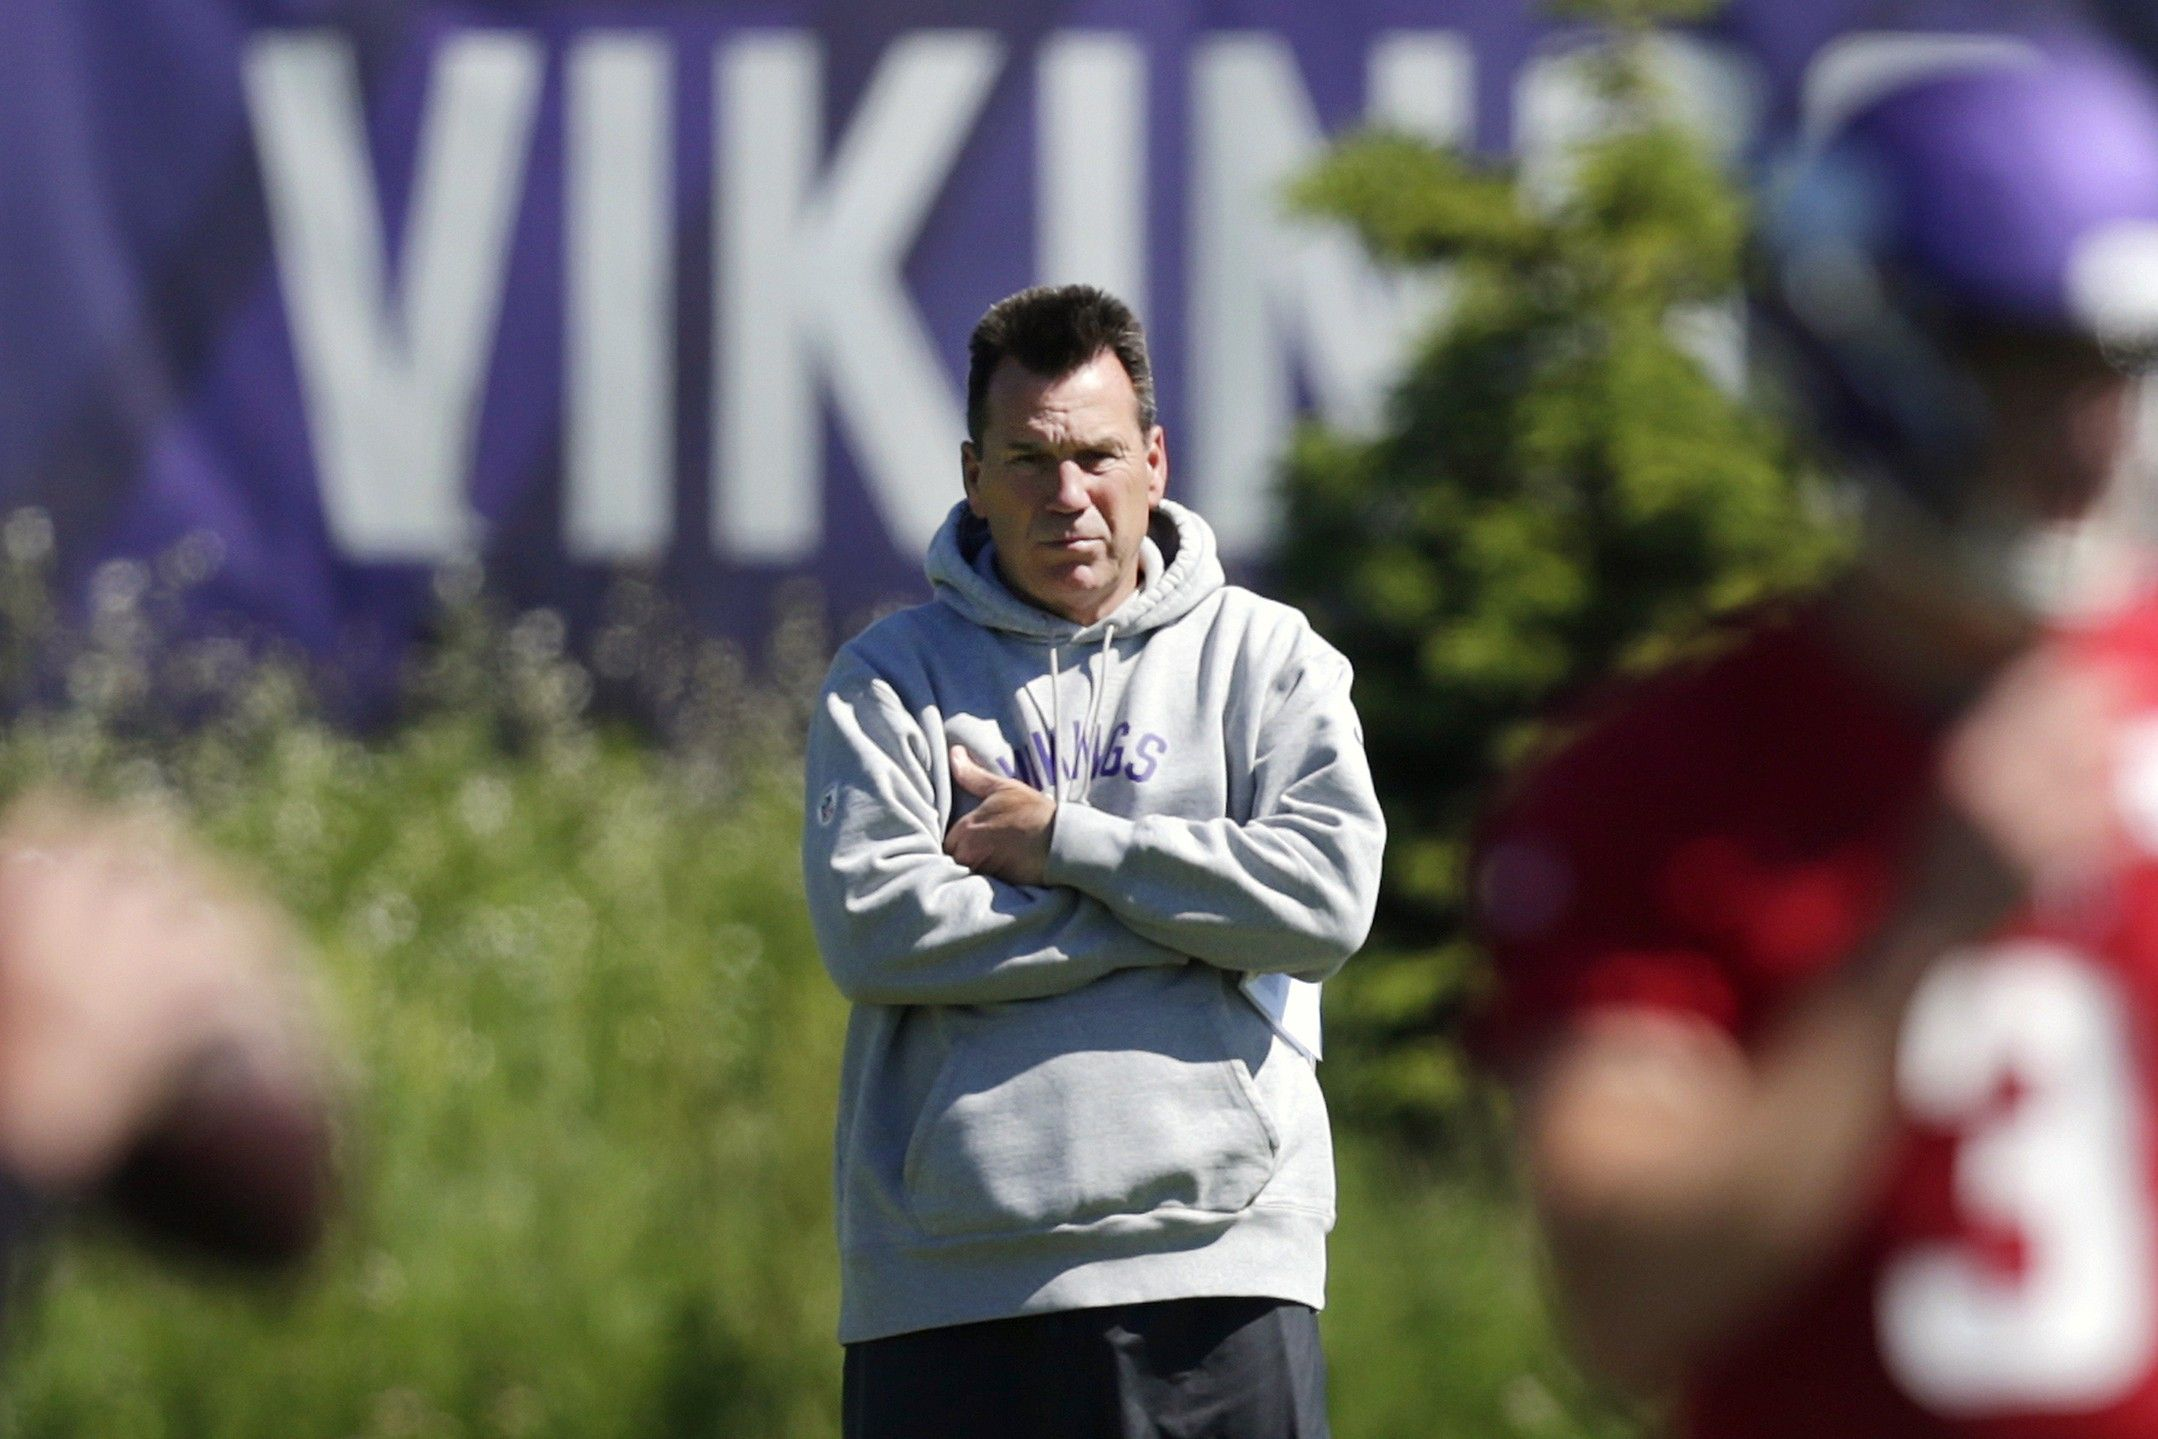 Sources Kubiak to take over OC duties for Vikes in 2020